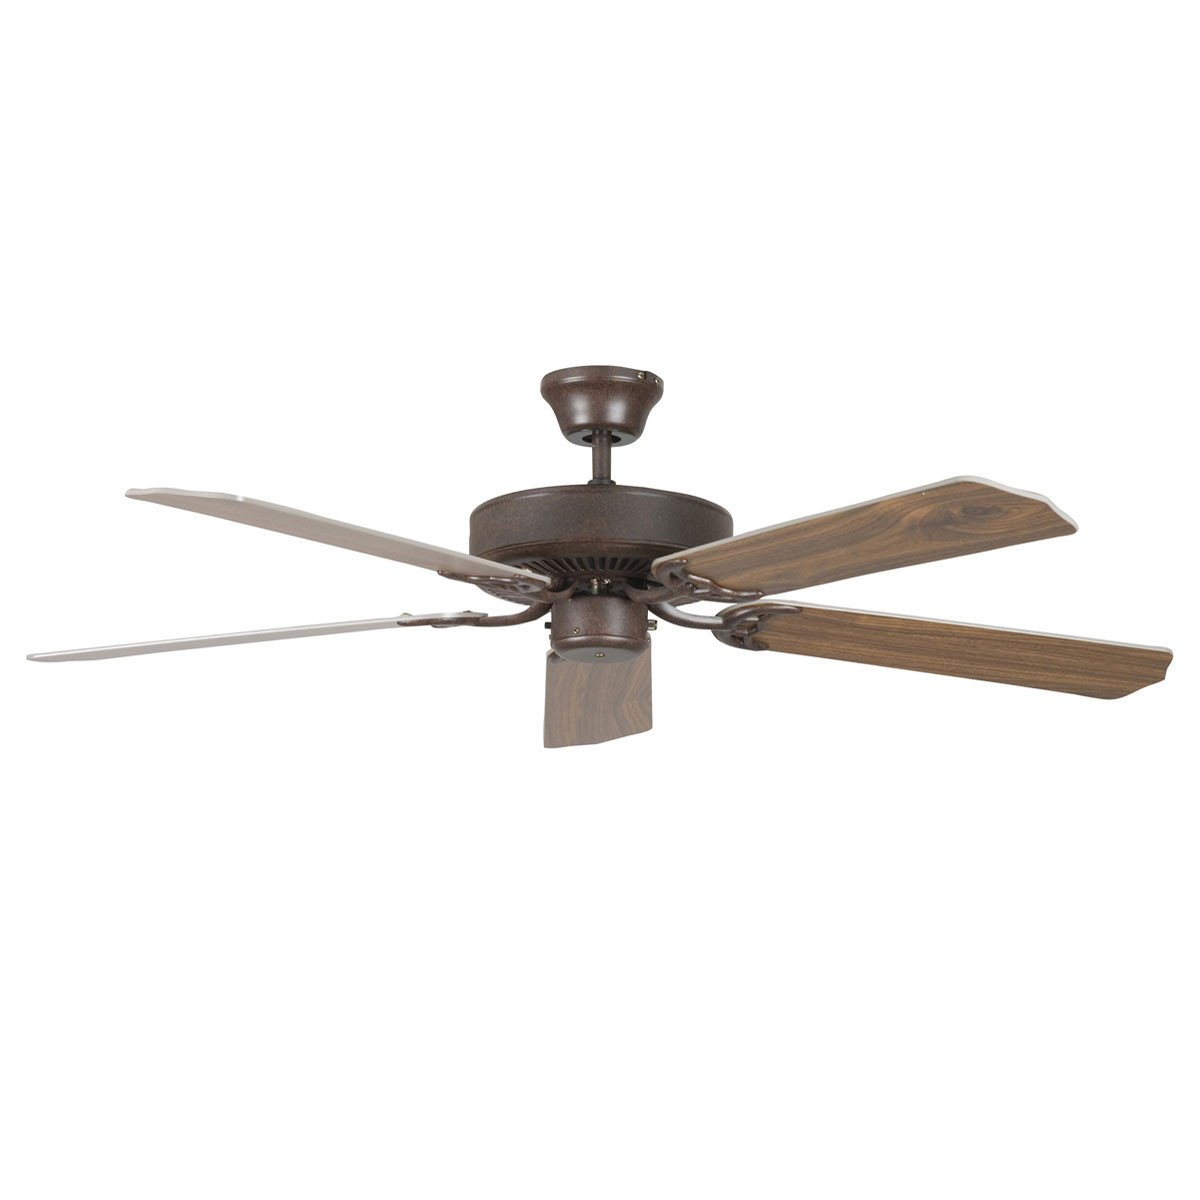 "Concord Fans 52"" Heritage Rubbed Bronze Simple Attractive Ceiling Fan"